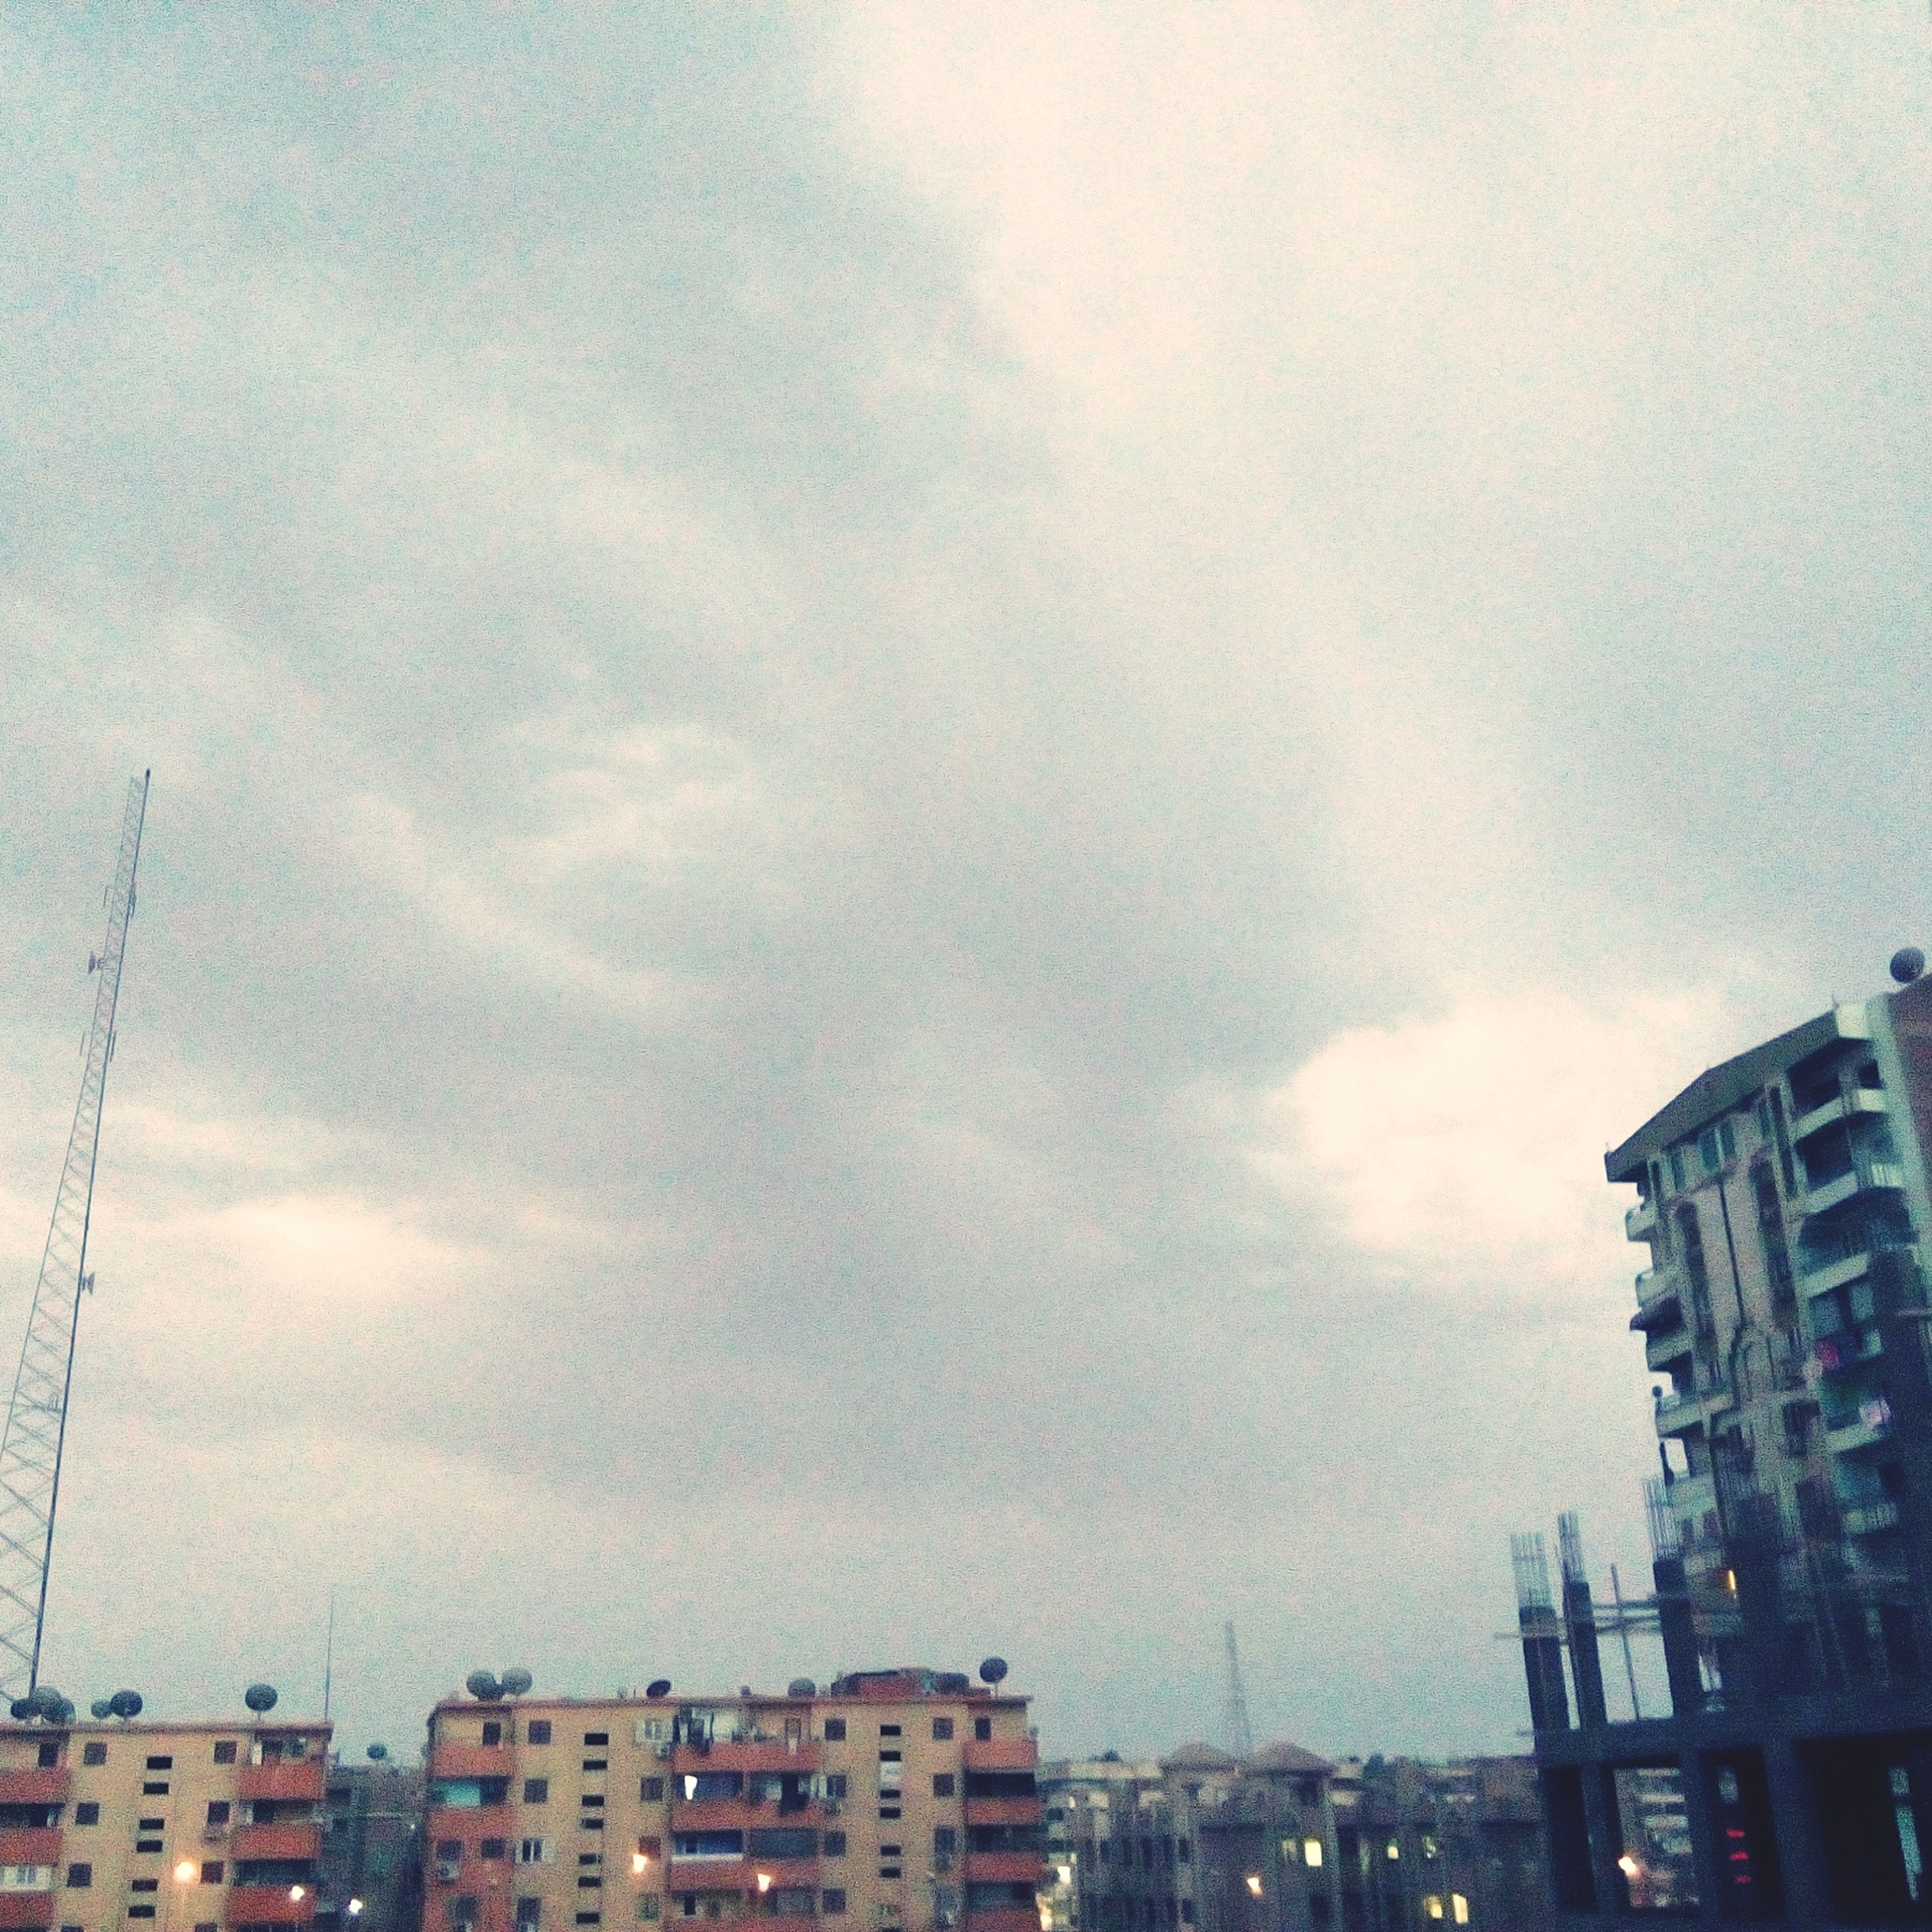 building exterior, architecture, built structure, sky, cloud - sky, city, low angle view, cloudy, residential building, residential structure, building, cloud, residential district, cityscape, weather, overcast, outdoors, no people, city life, dusk